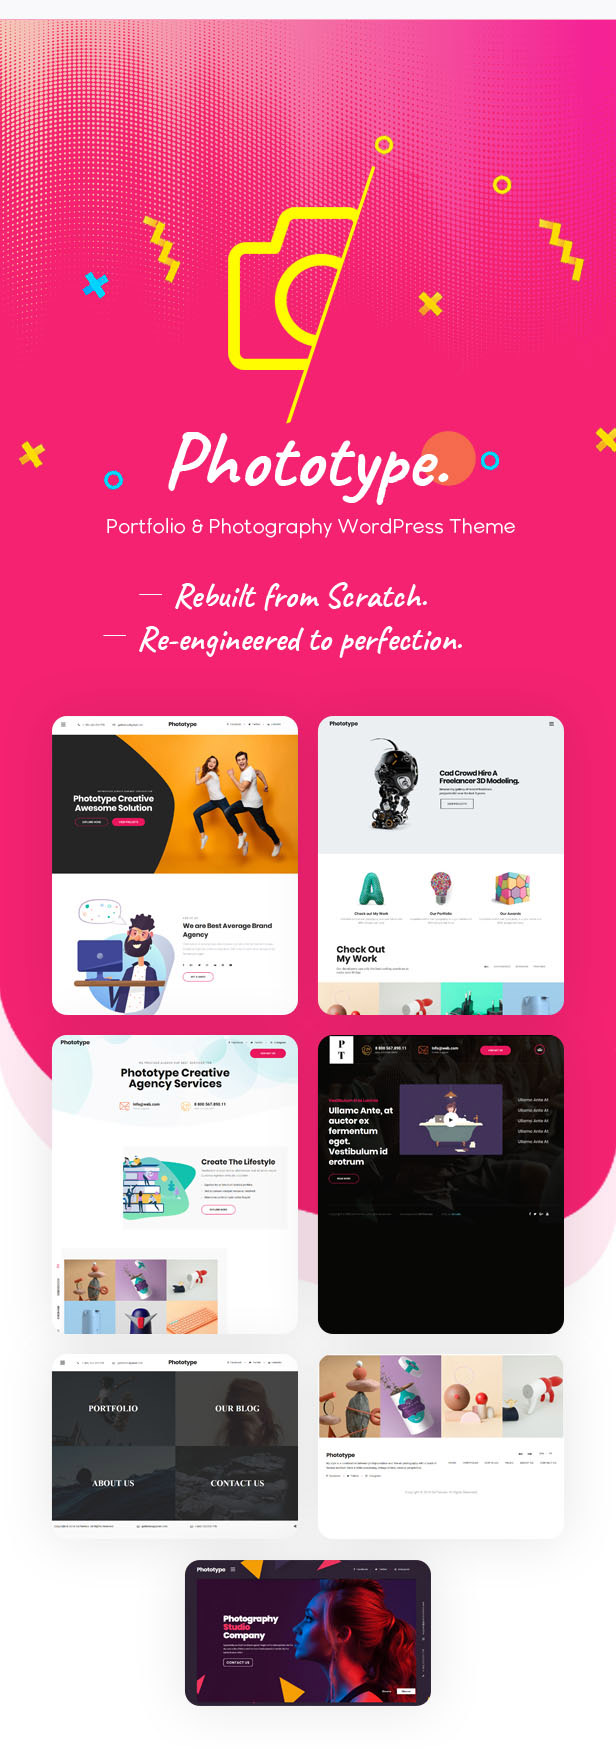 Phototype - New Elementor Portoflio WordPress Theme 2019 for Agency, Photography Sites - 1